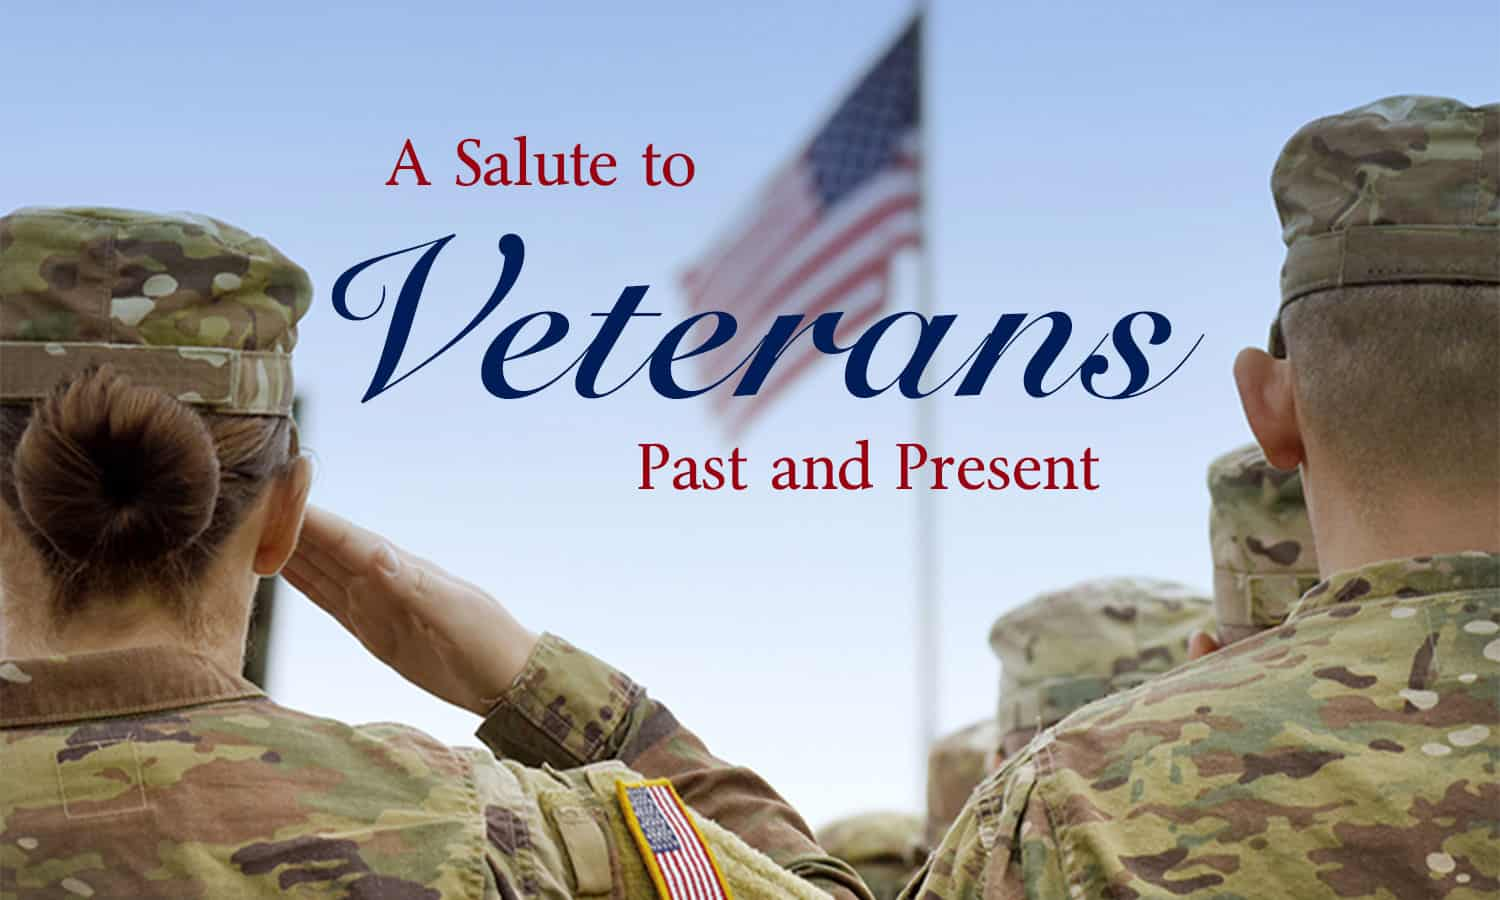 A Salute to Veterans Past and Present